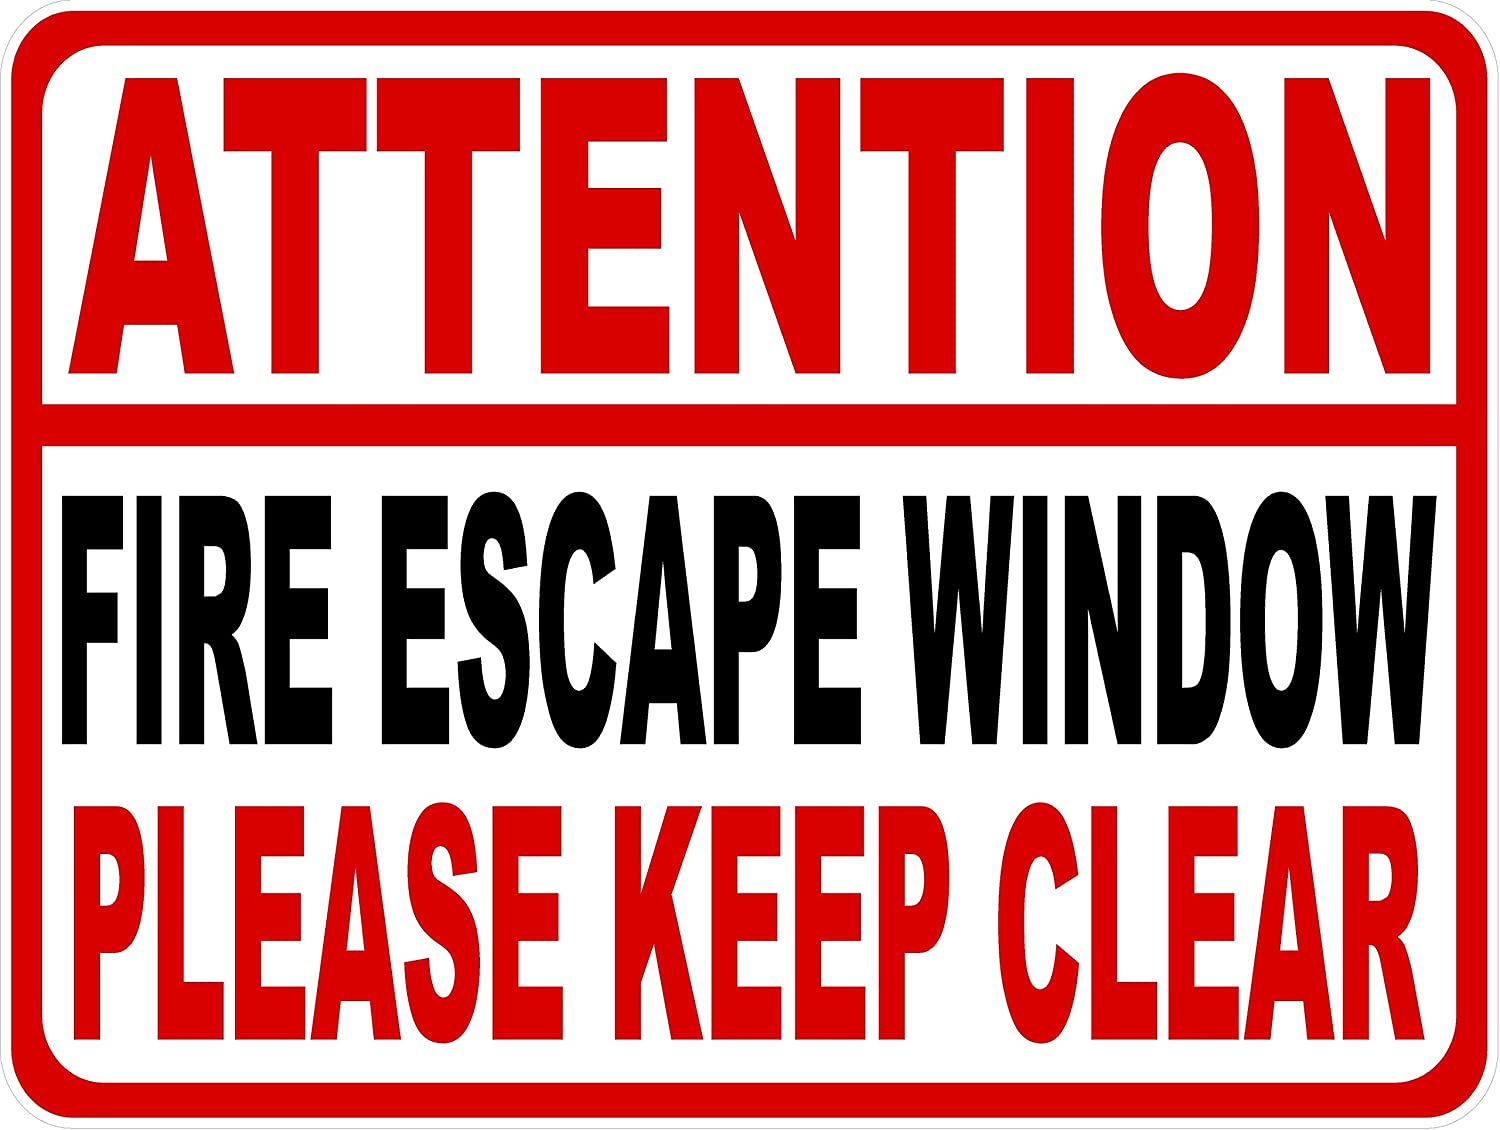 5 Pack 4x6 Attention Fire Escape Window Please Keep Clear Decal Made in USA. 5-Decals Workplace Safety Decal